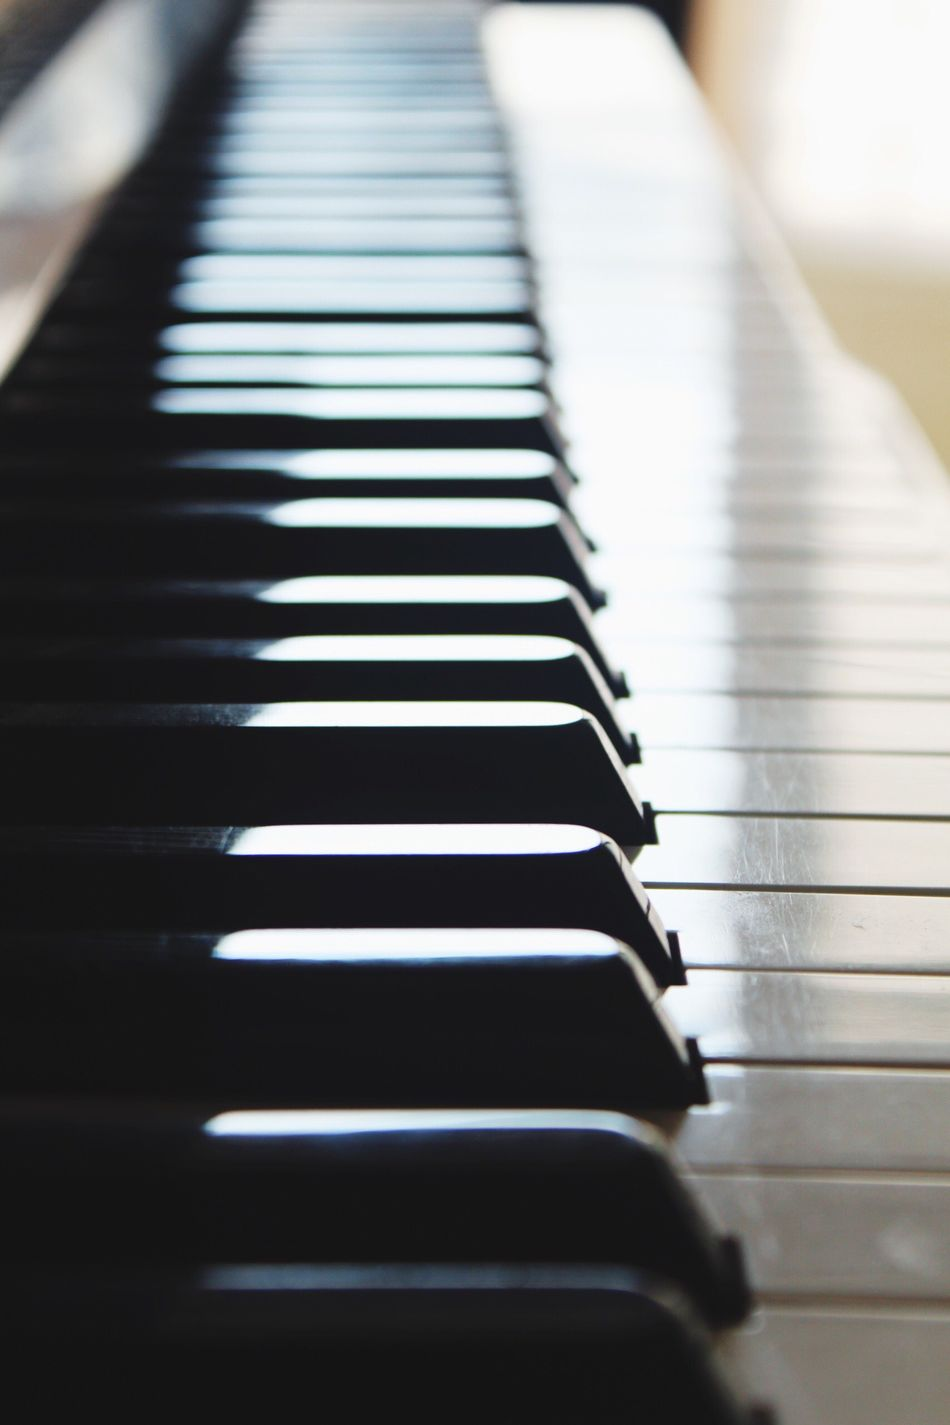 Piano Piano Keys Piano Key Piano Music Musical Instrument Arts Culture And Entertainment Close-up Indoors  No People Backgrounds Performing Arts Event Classical Music Day Emotions Black Blackandwhite EyeEm Best Shots - Black + White Eye EyeEm Best Shots Wood Eye Best Shot Canon Point